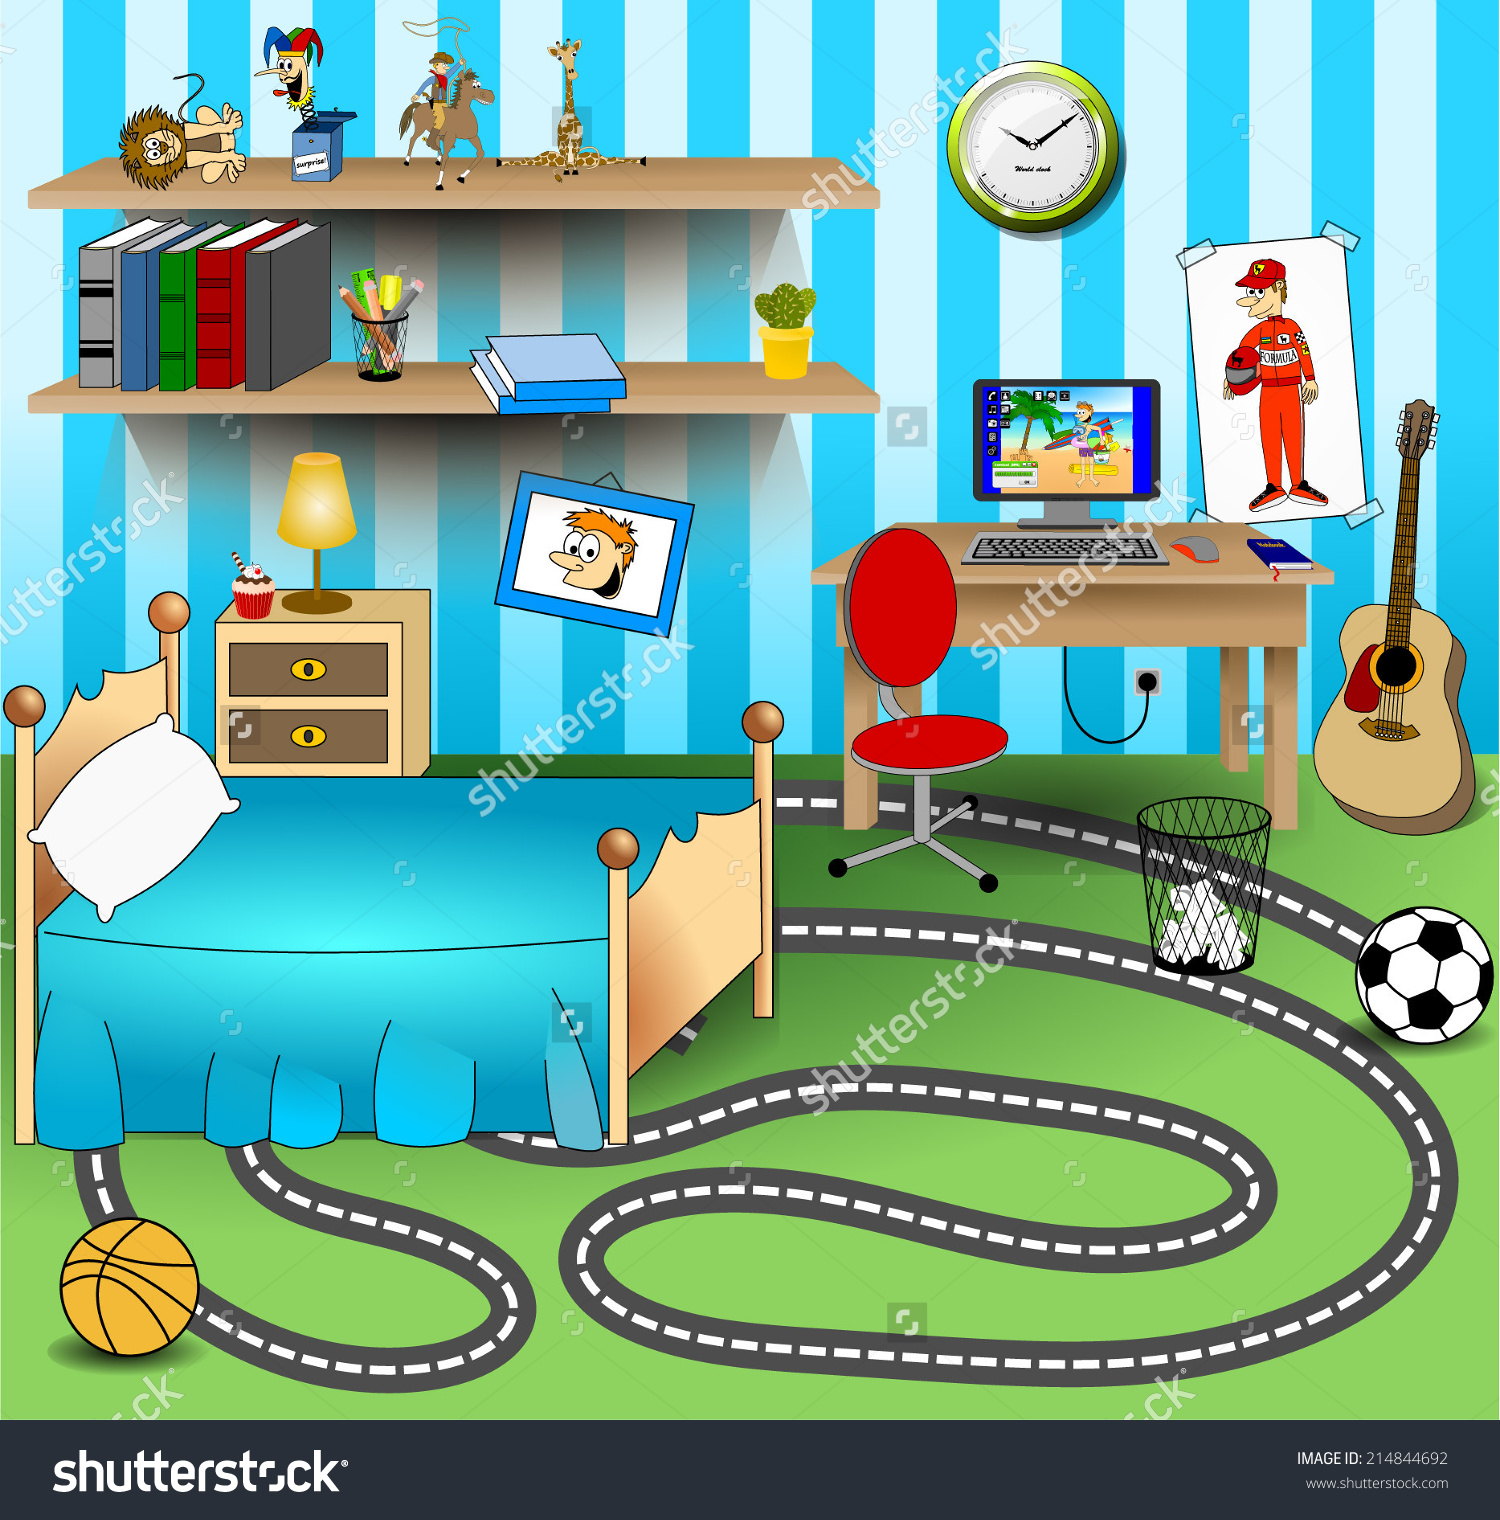 Clipart for childrens bedroom.